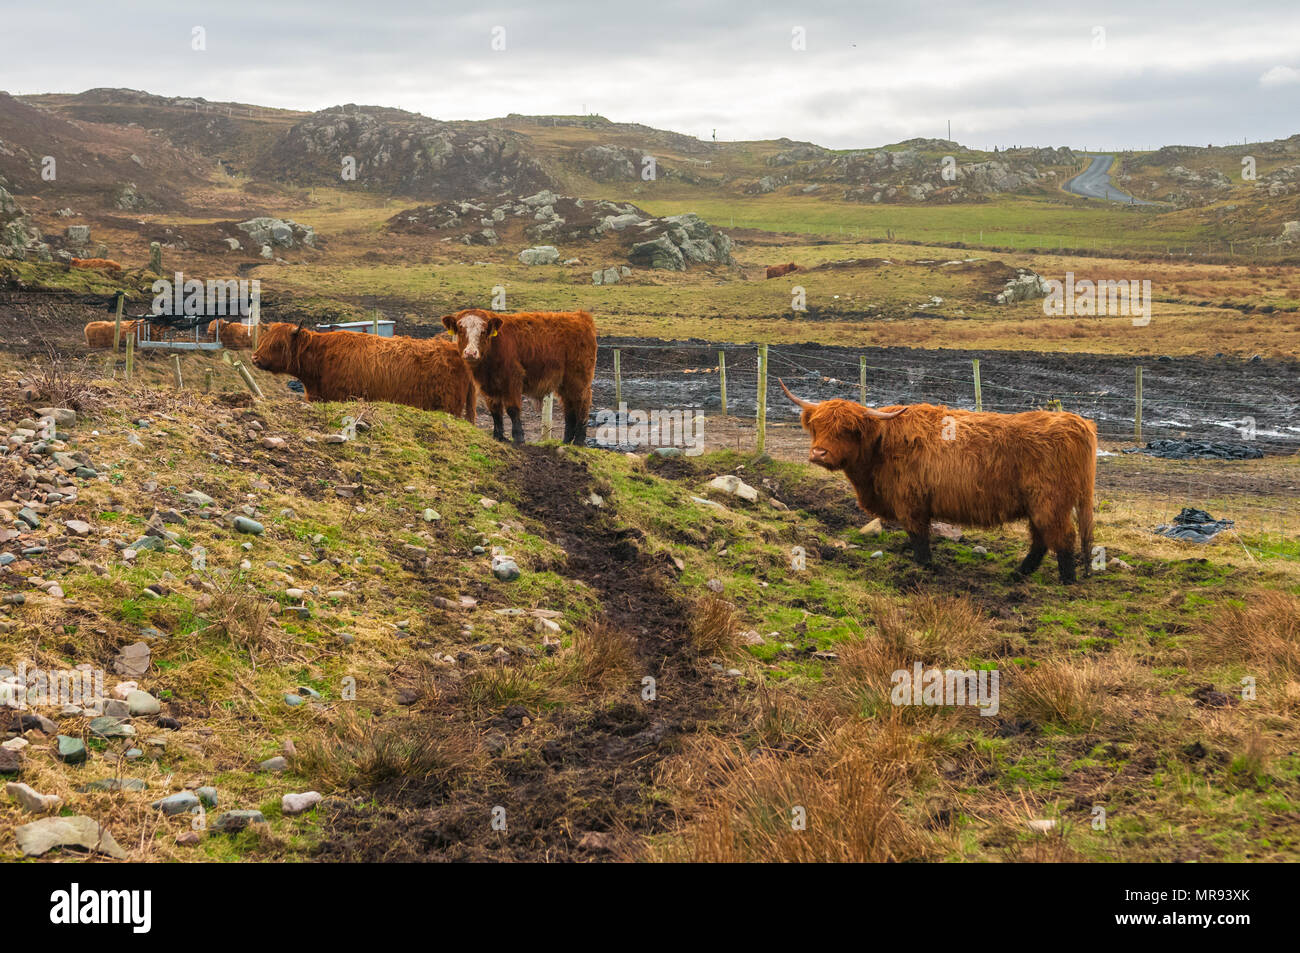 Highland cattle on the landscape in Donegal, Ireland Stock Photo